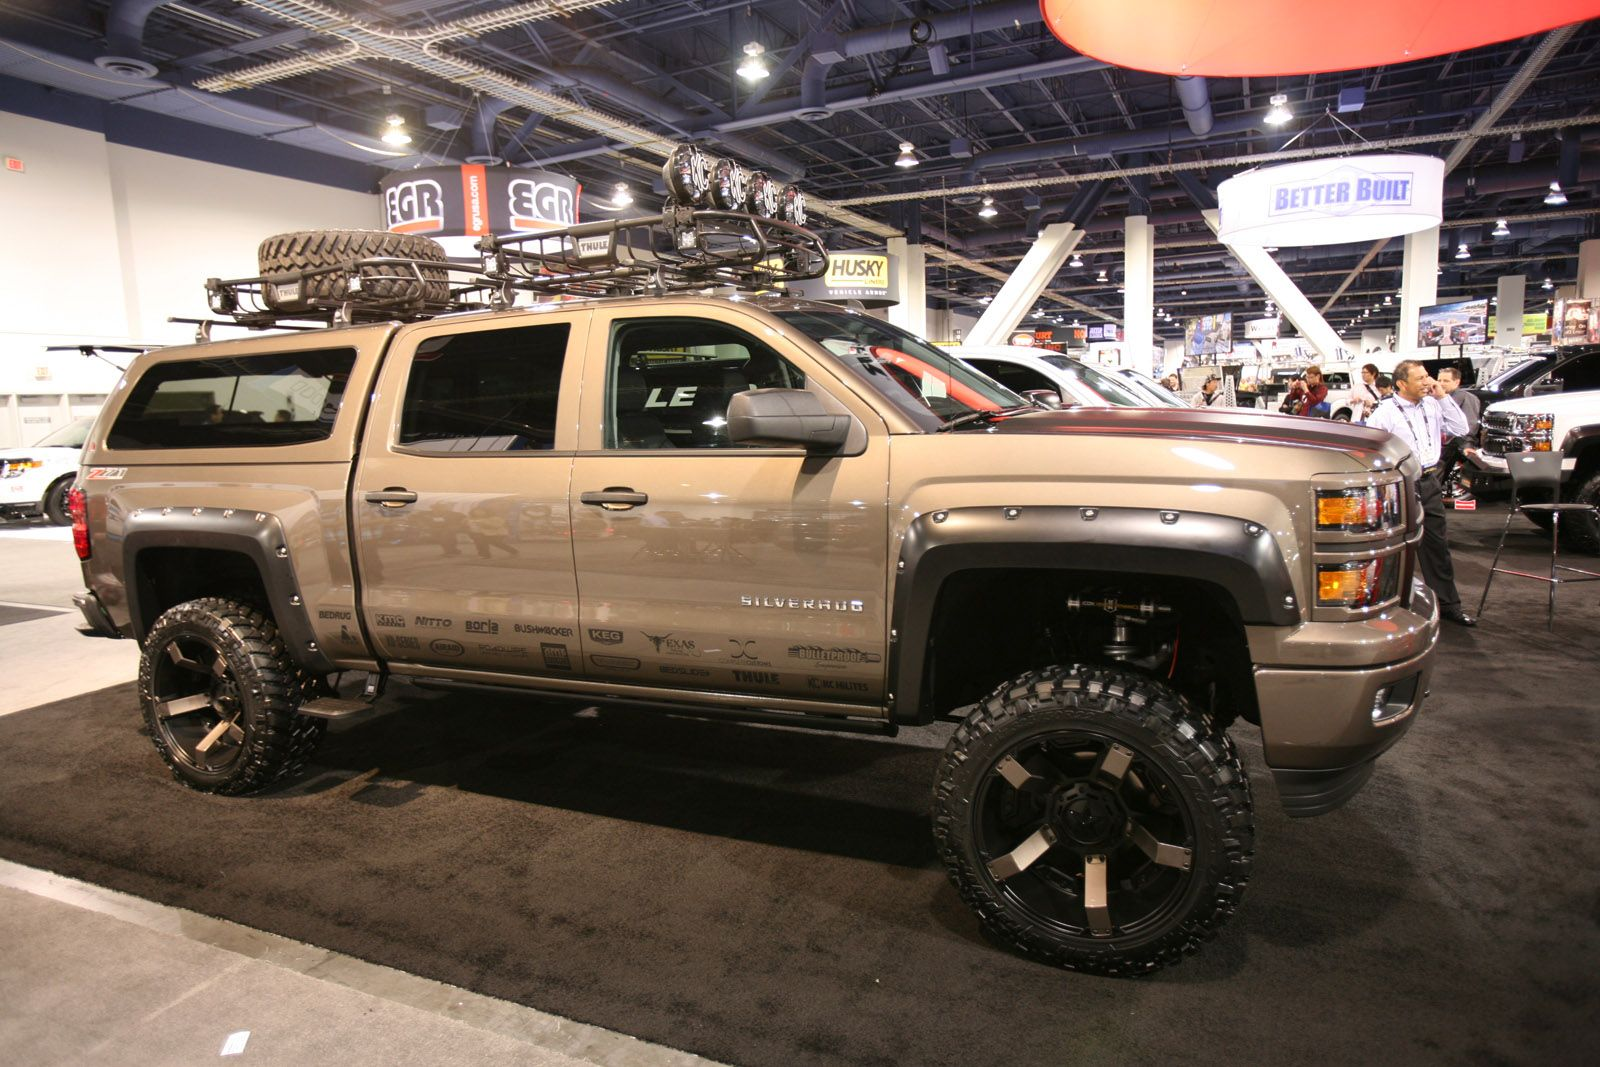 Silverado 1996 chevy silverado accessories : Custom 2014 Chevrolet Silverado and GMC Sierra trucks at SEMA 2013 ...